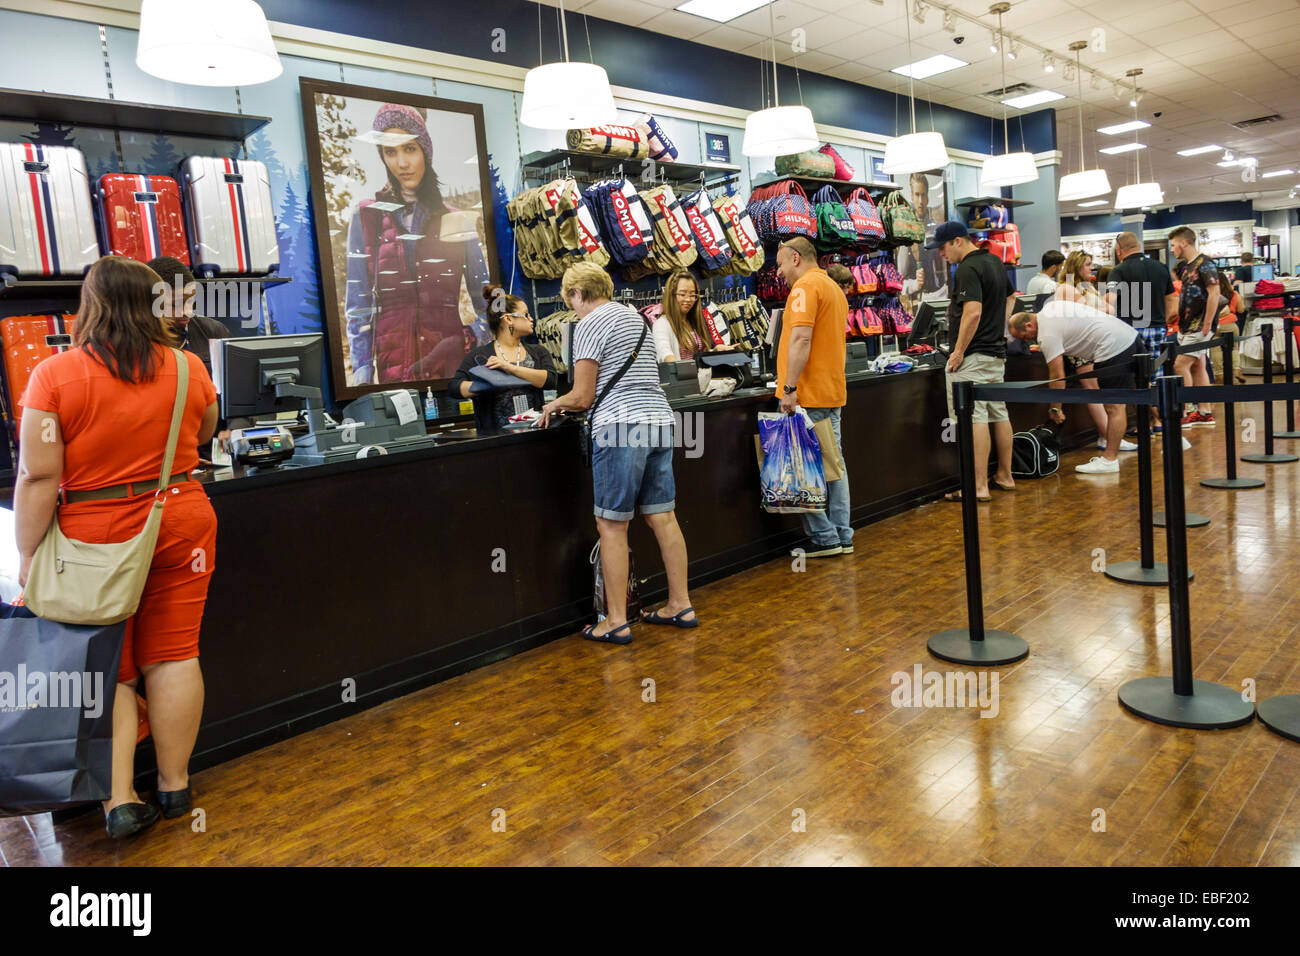 Jb Hi Fi Stock Check Checkout Line Queue Stock Photos And Checkout Line Queue